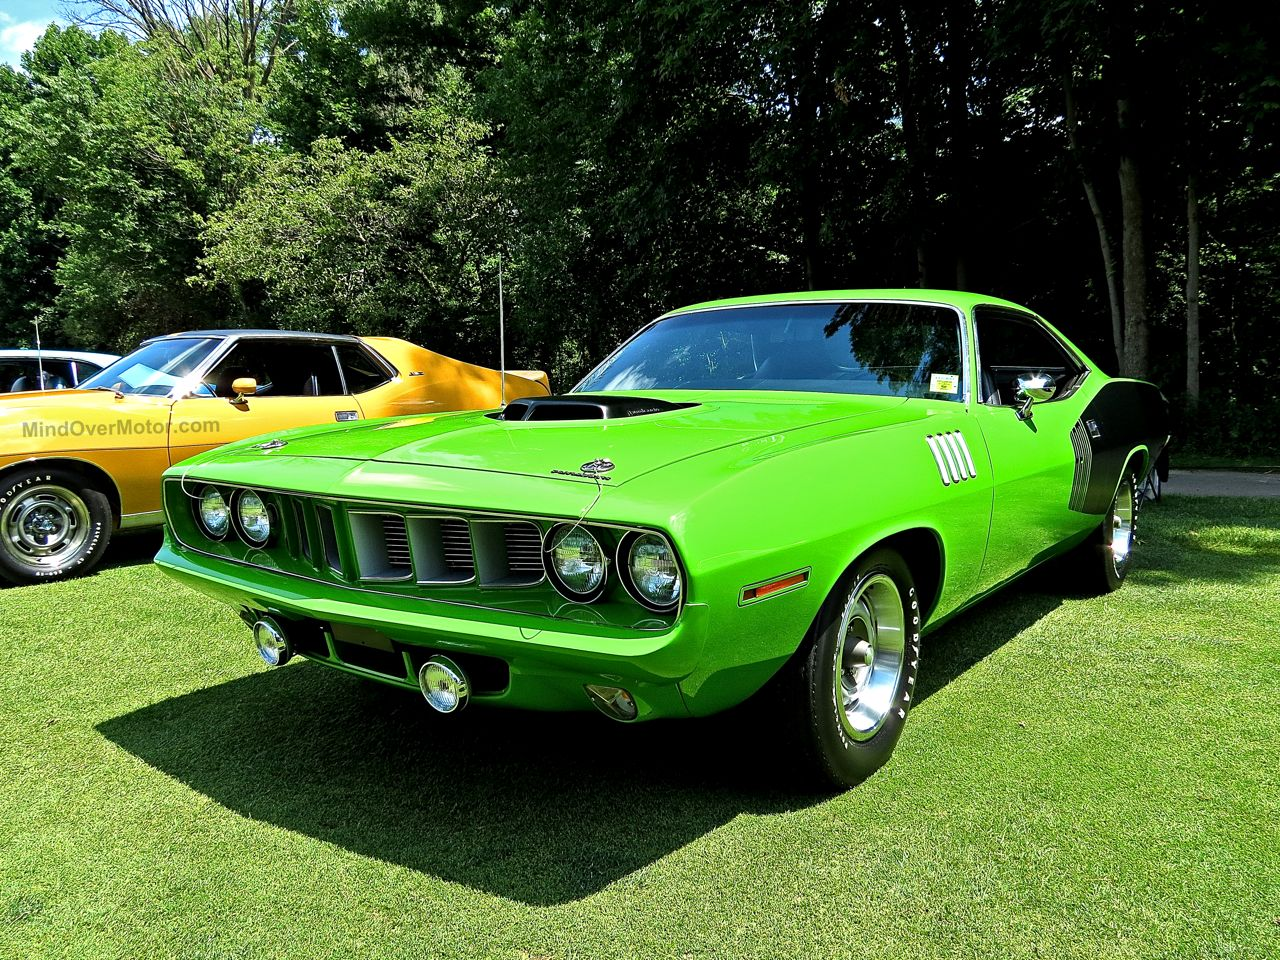 1971 Plymouth Hemicuda Concours of America 1